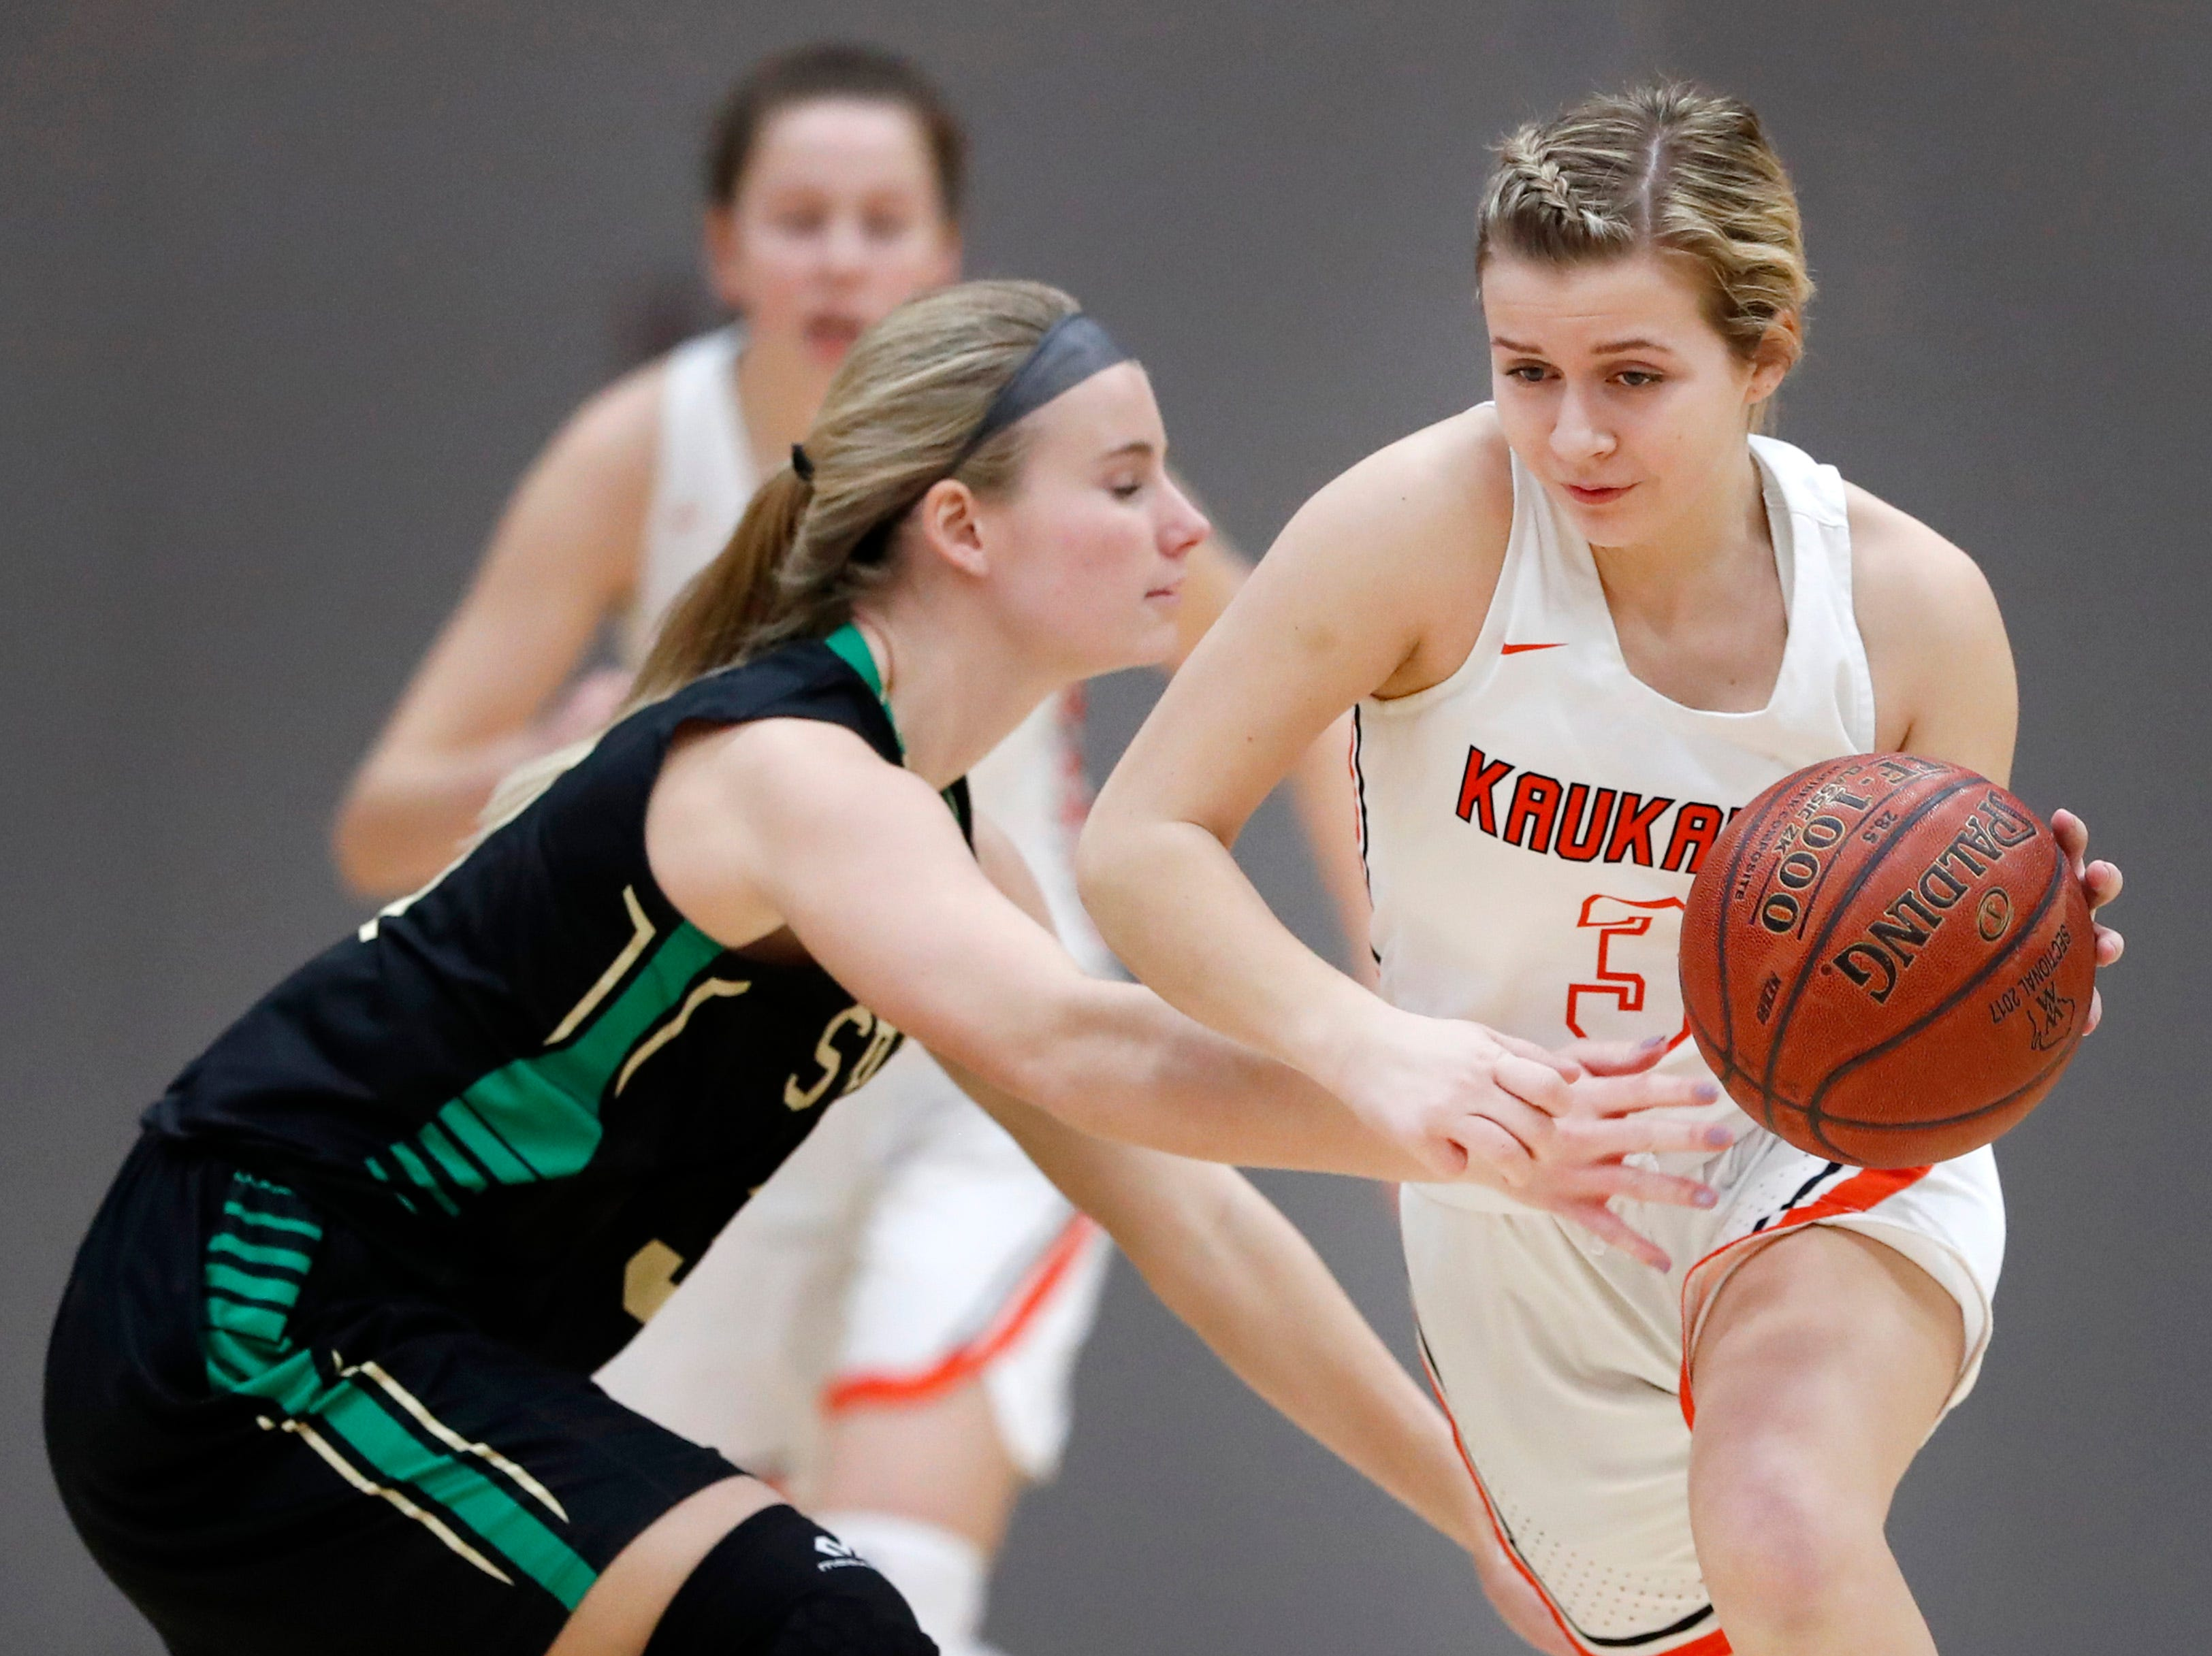 Oshkosh North High SchoolÕs Ashley Wissink tries to stop Kaukauna High School's Khloe Hinkens as she makes a run down the court Tuesday, Feb. 5, 2019, in Kaukauna, Wis. Oshkosh North defeated Kaukauna High School 77-51.